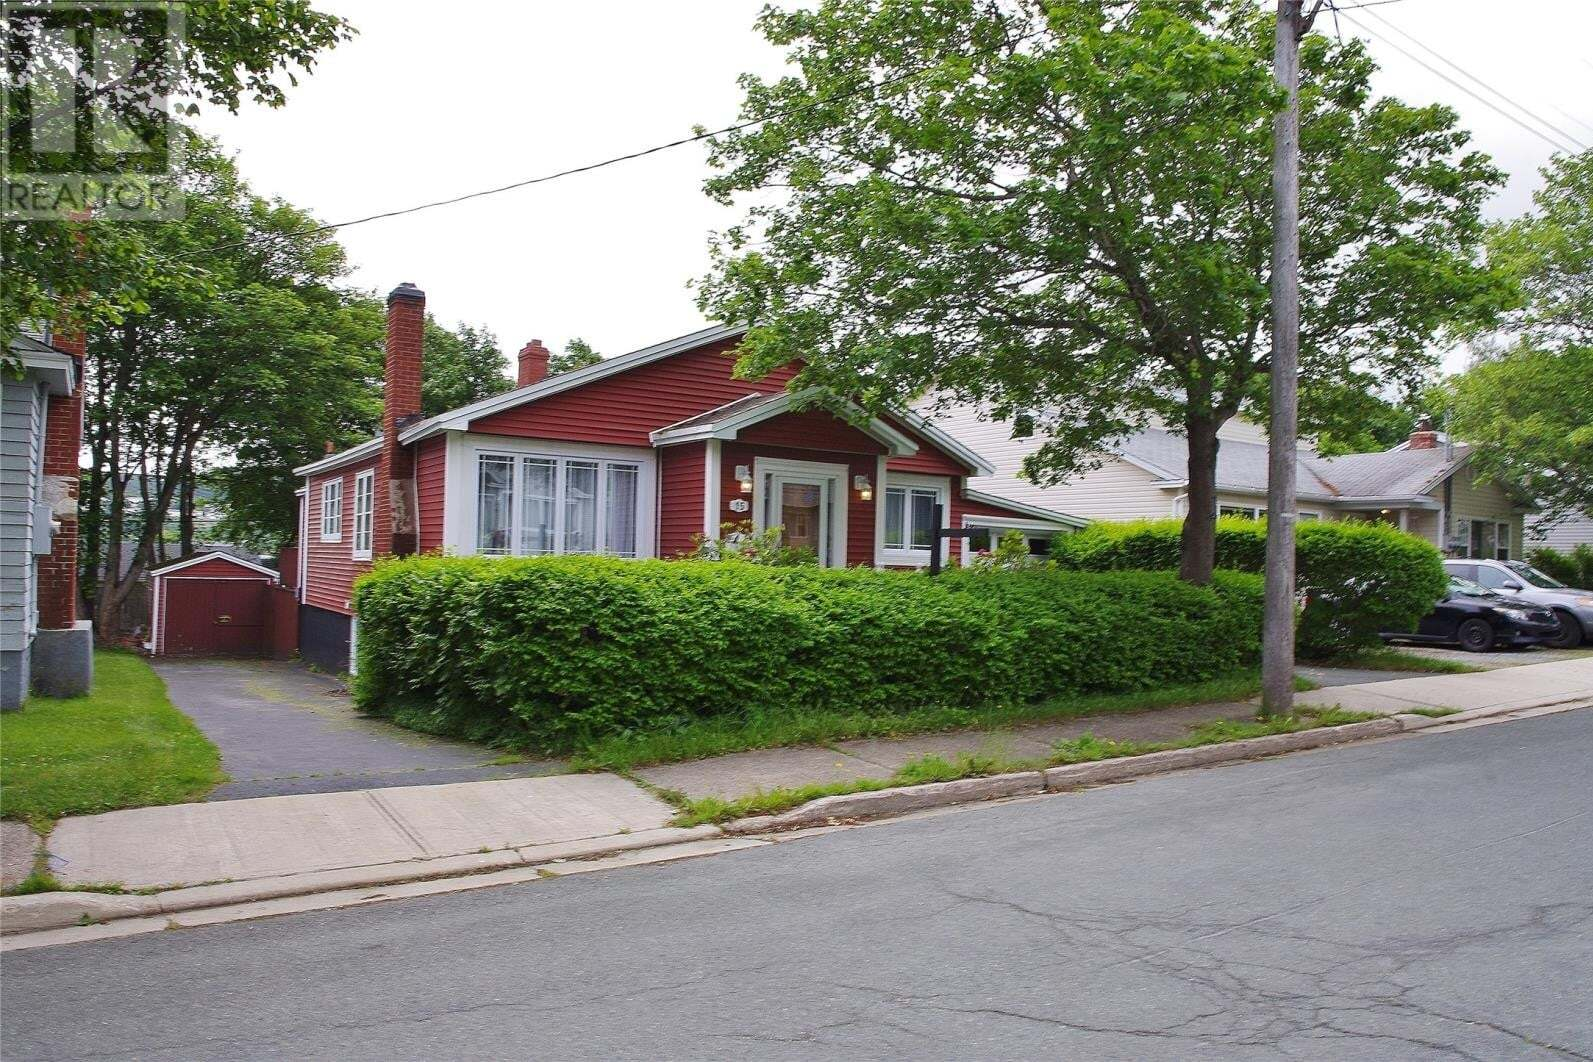 House for sale at 15 Carson Ave St. John's Newfoundland - MLS: 1217338